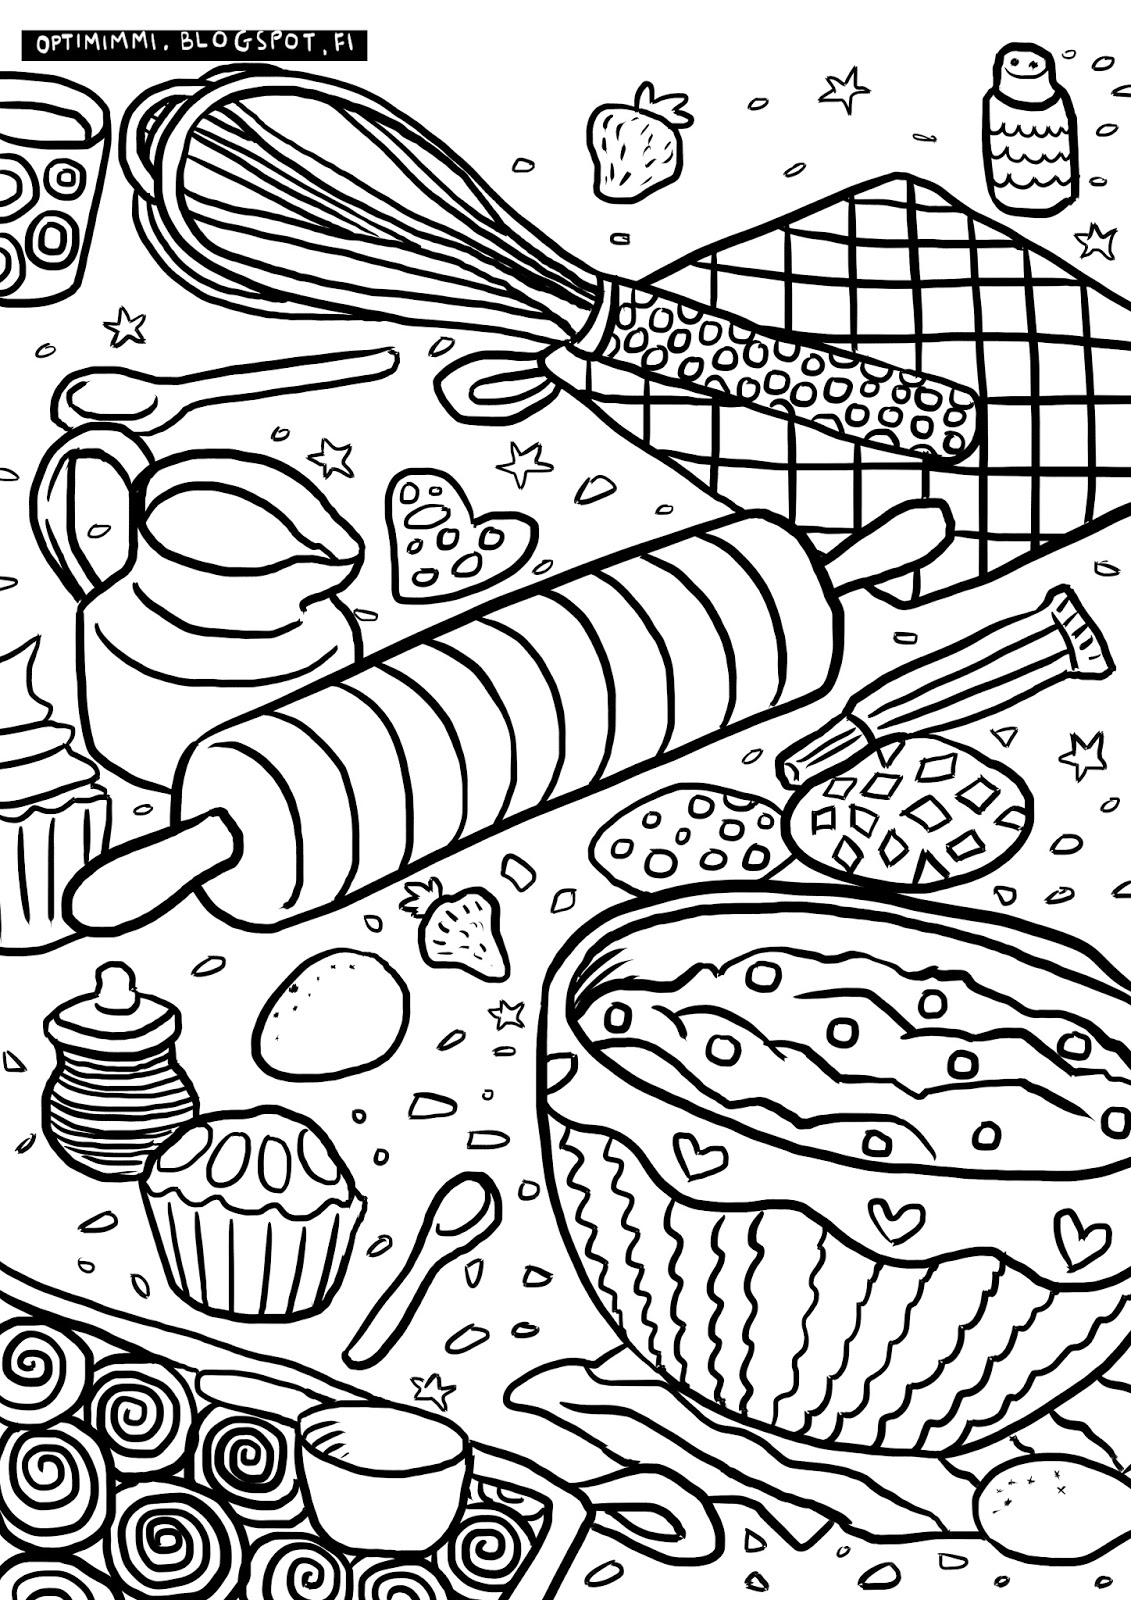 coloring pages of baking - photo#11